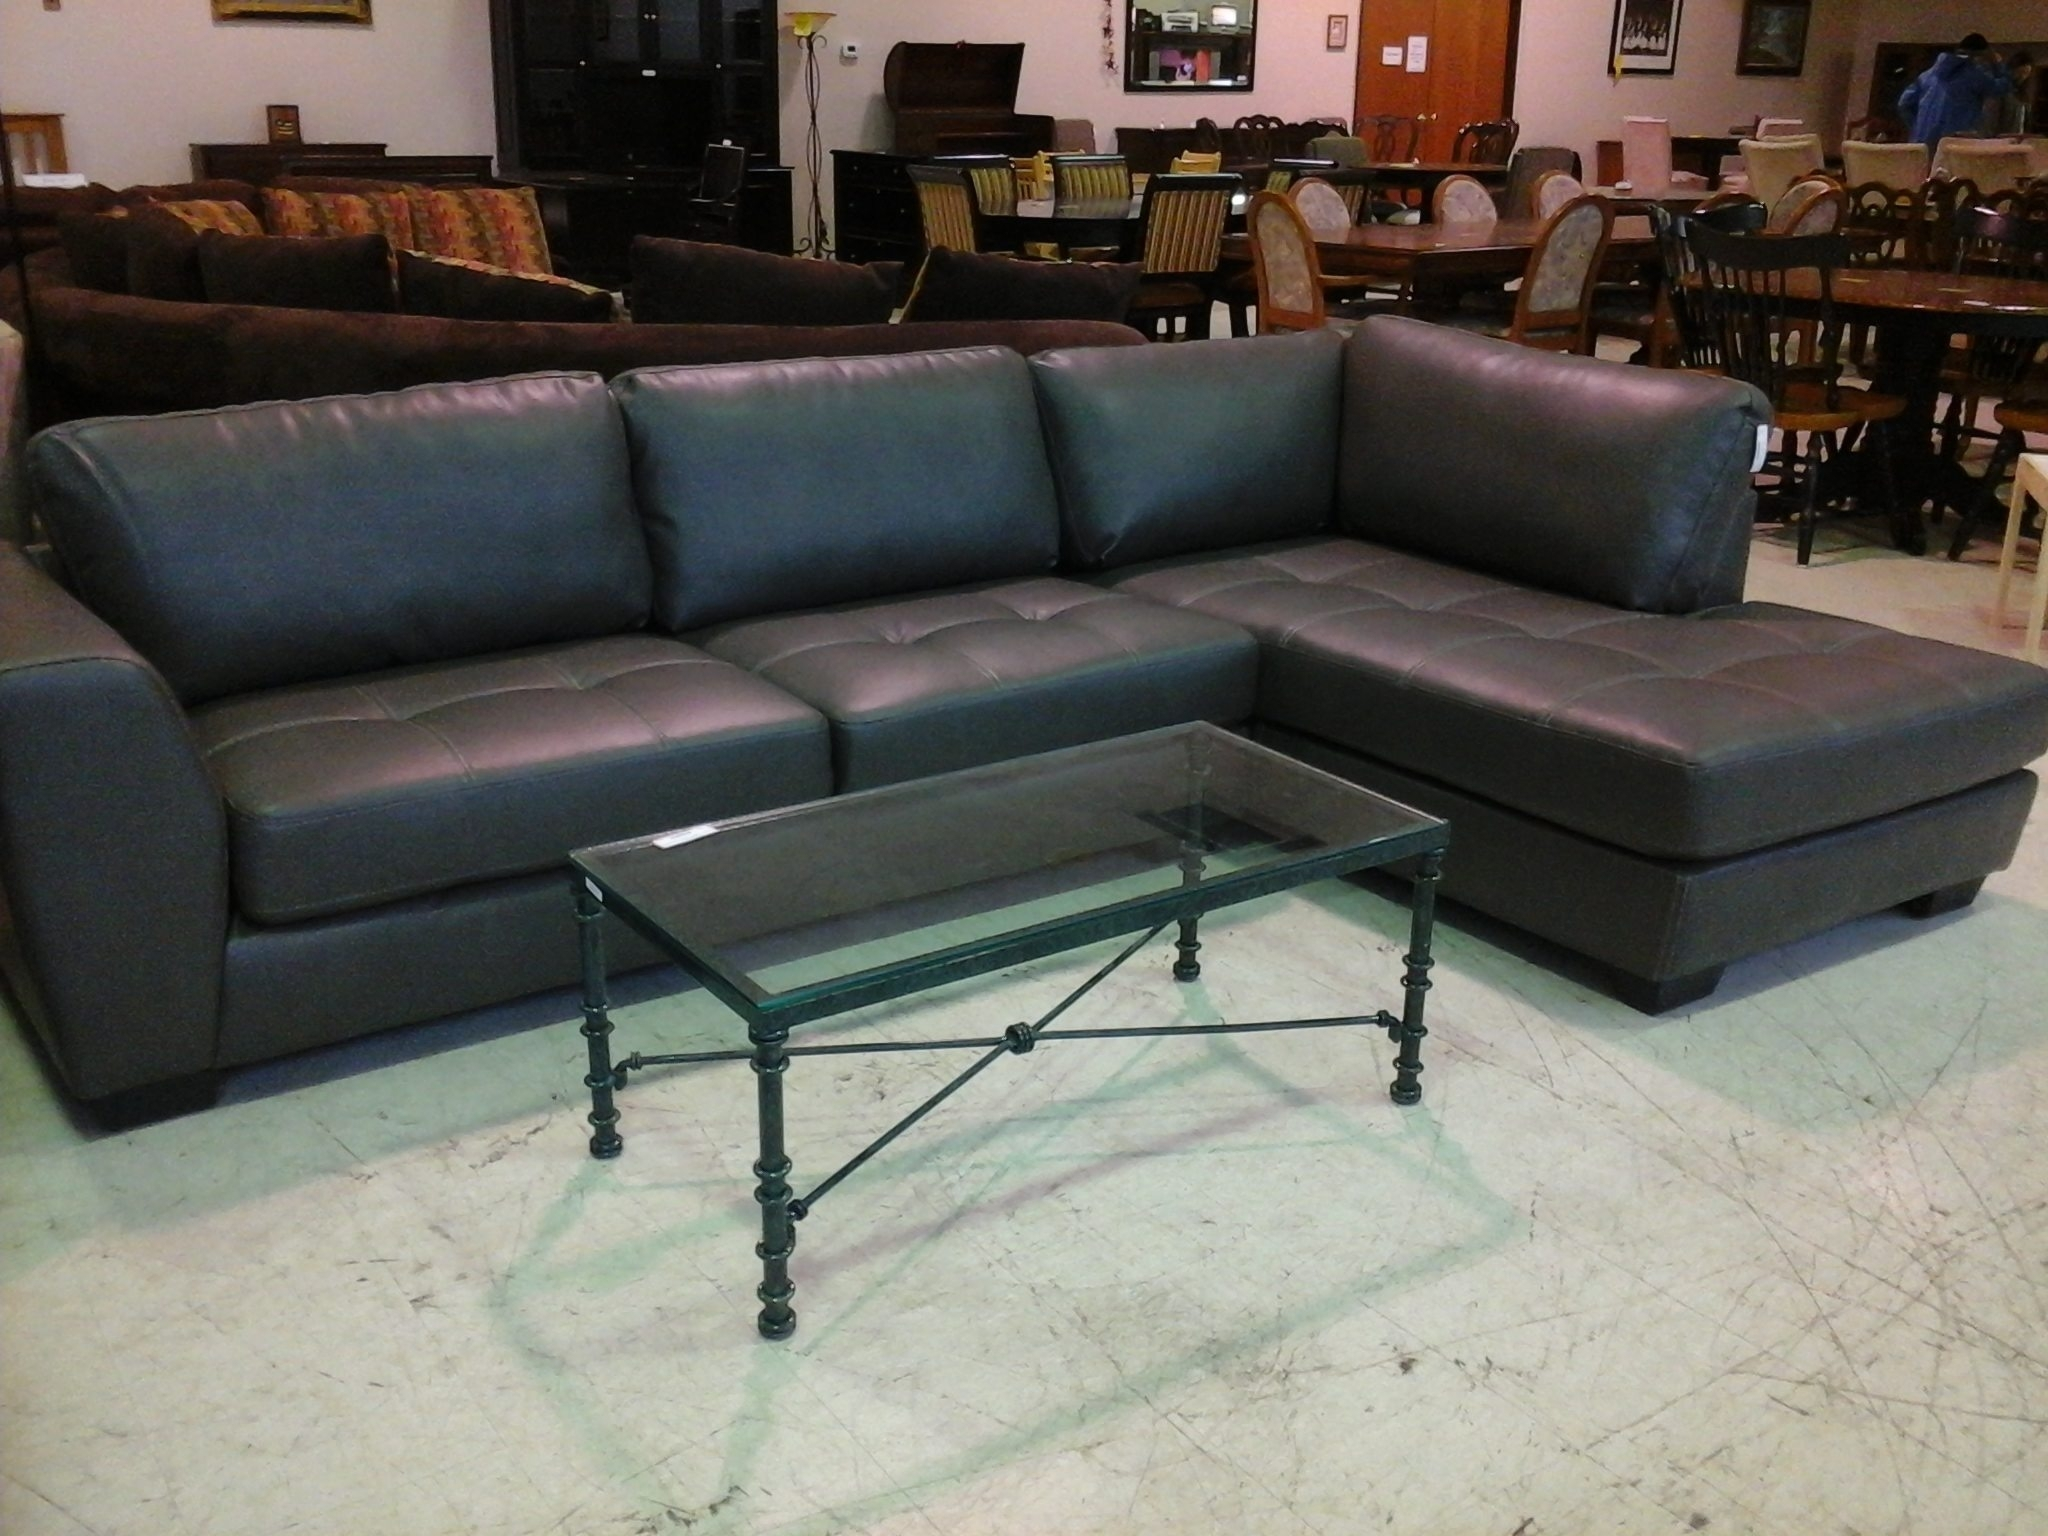 raymour and flanigan sectional sofas beatnik leather sofa columbus chocolate 10 inspirations at